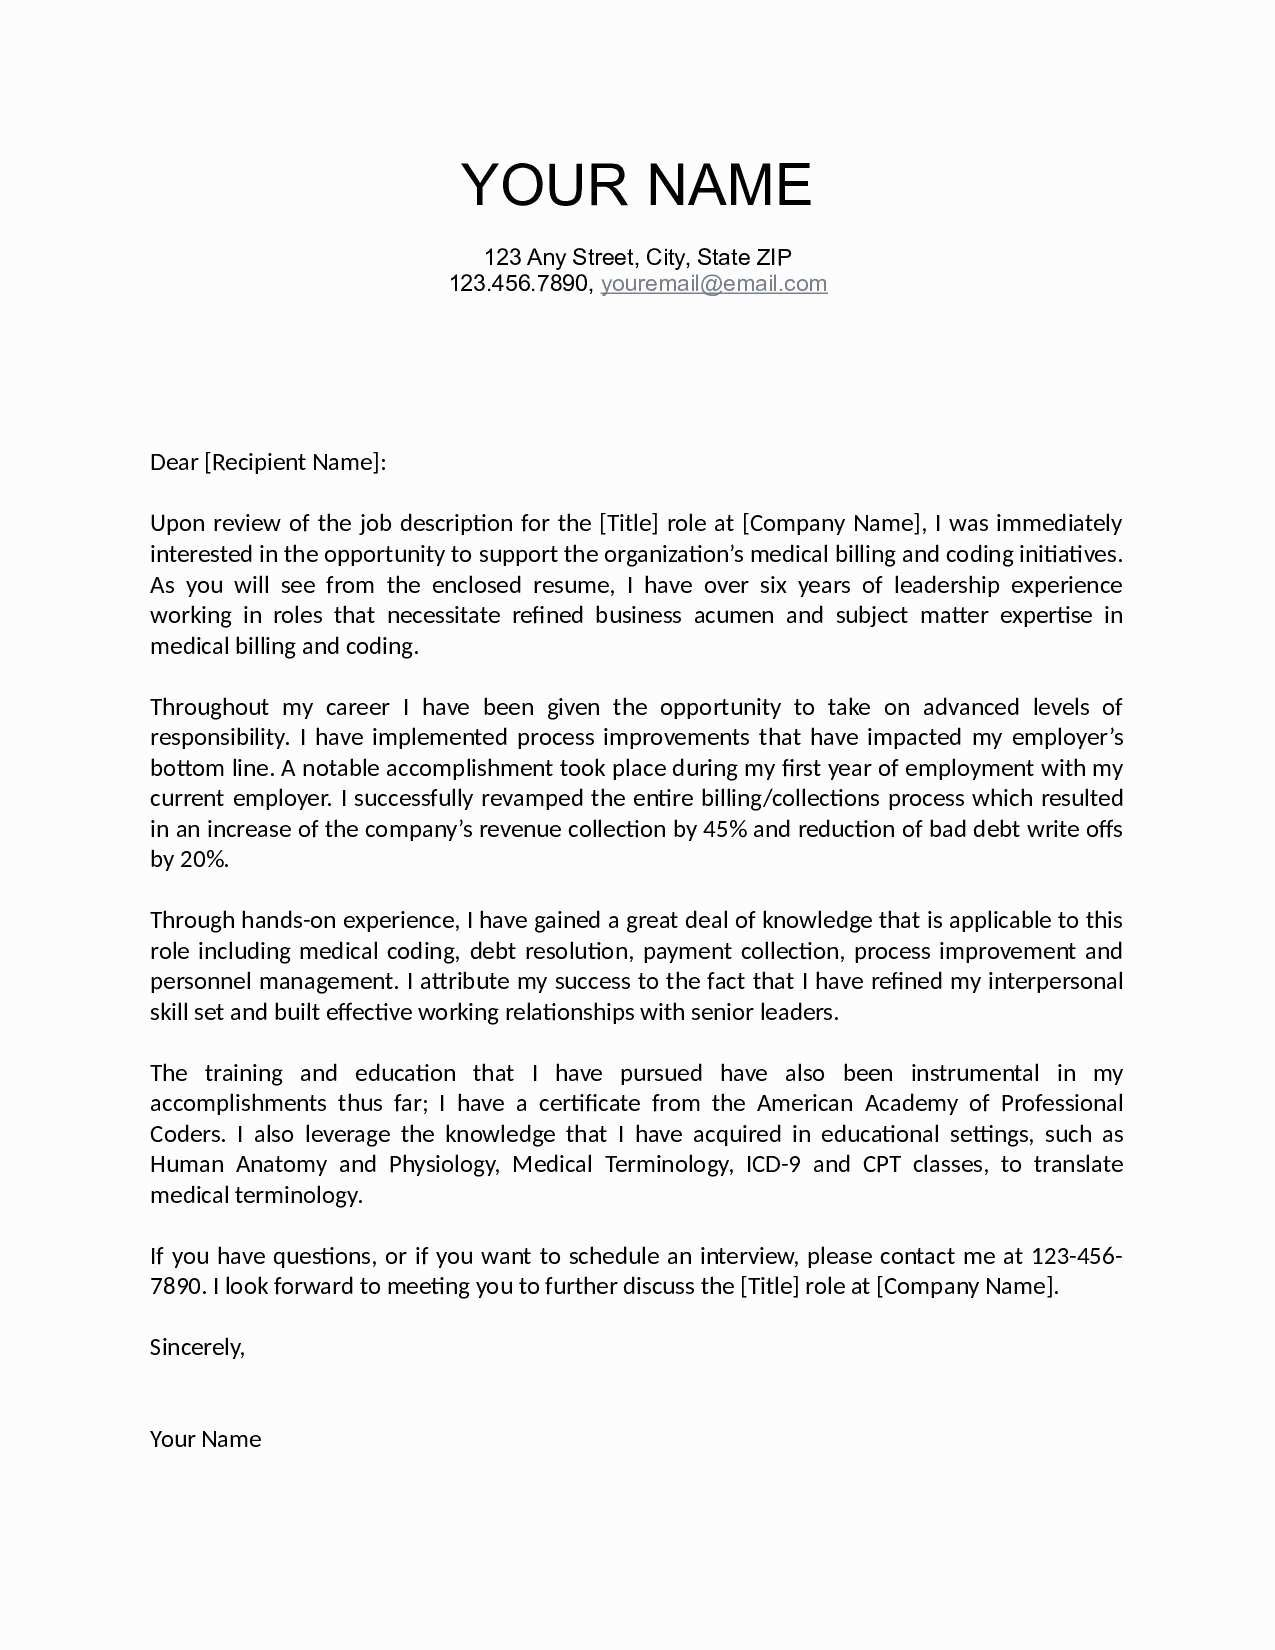 Linkedin Cover Letter Template - Sample Cover Letter for Linkedin Job Refrence Job Fer Letter